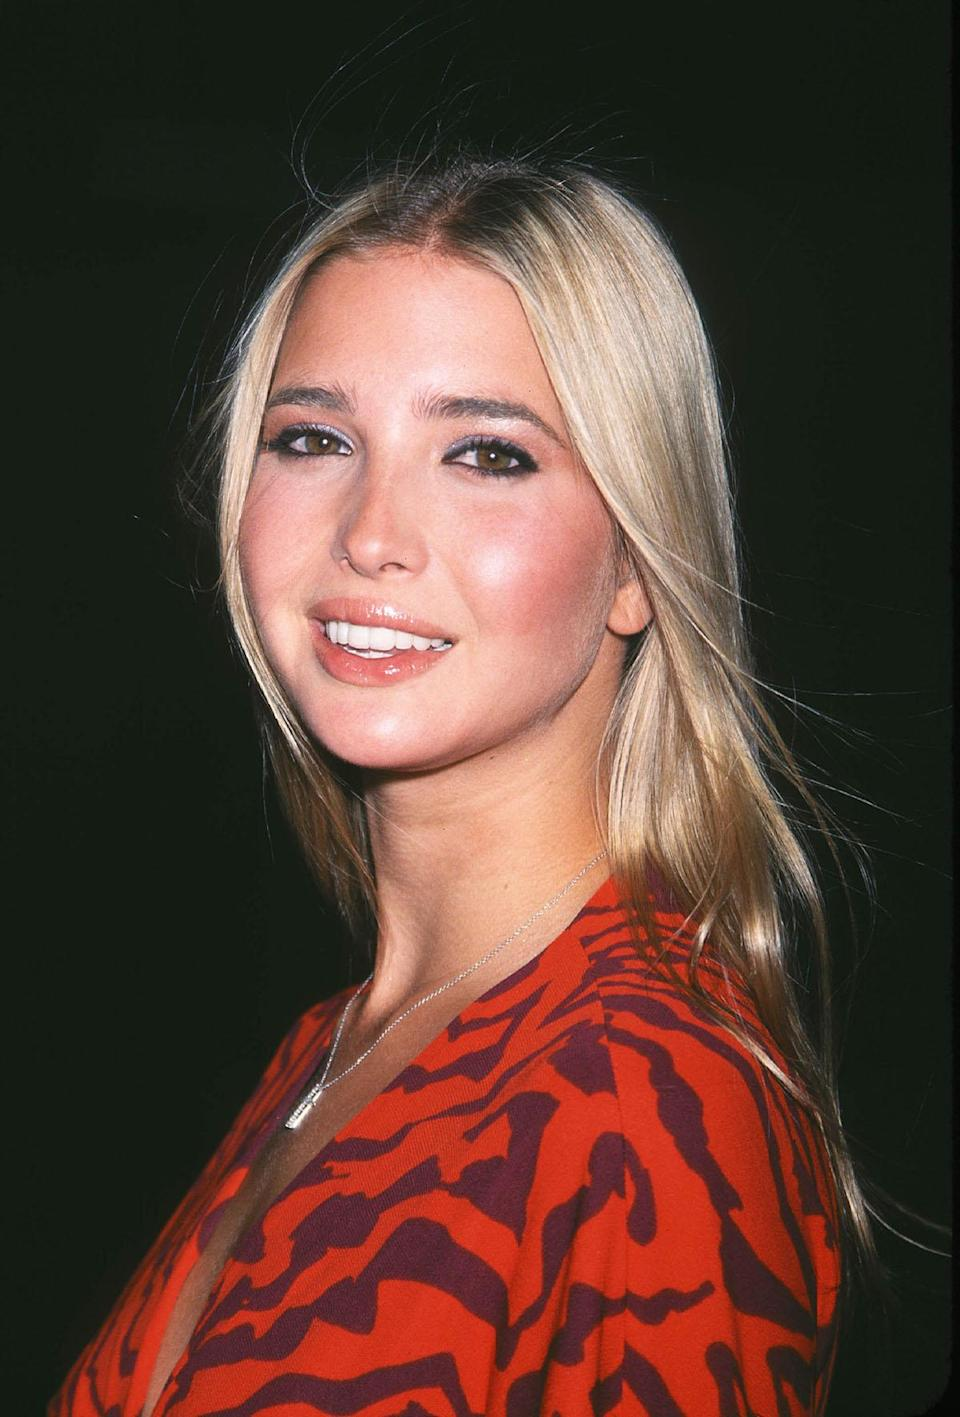 <p>Ivanka sports bright blond wispy locks and peach tones on her cheeks and lips. (Photo: AP Images) </p>